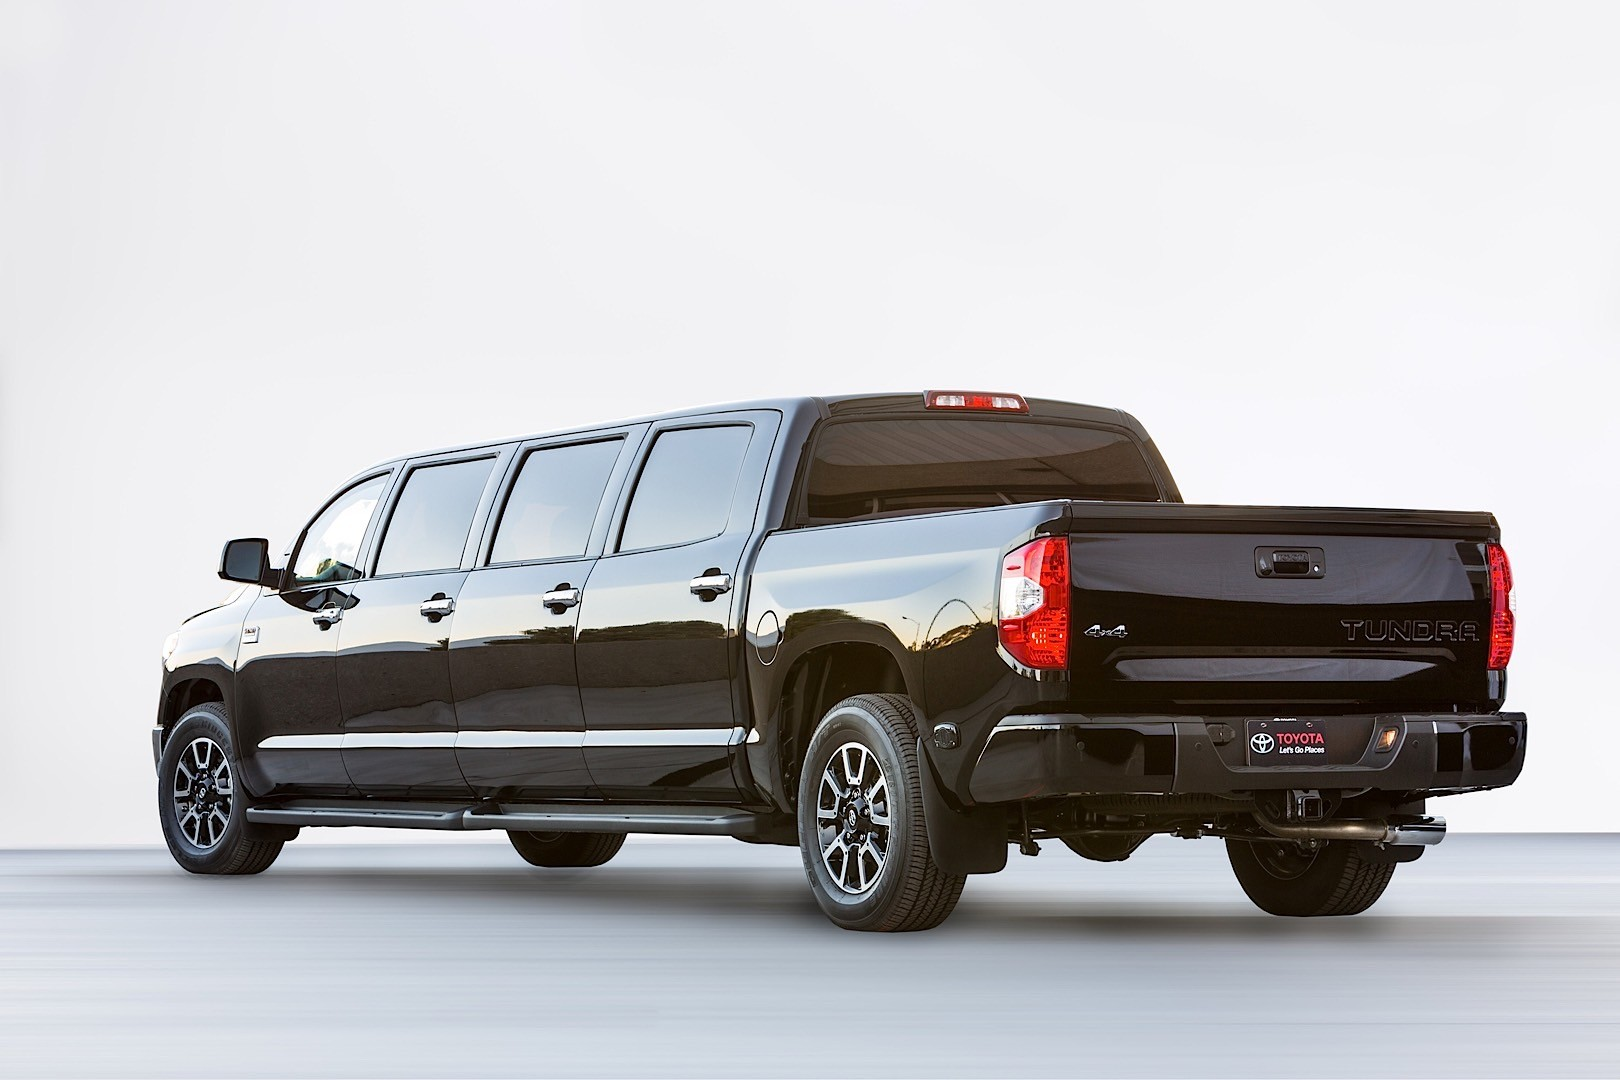 Toyota Tundrasine Is A Luxury Pickup Limousine Because